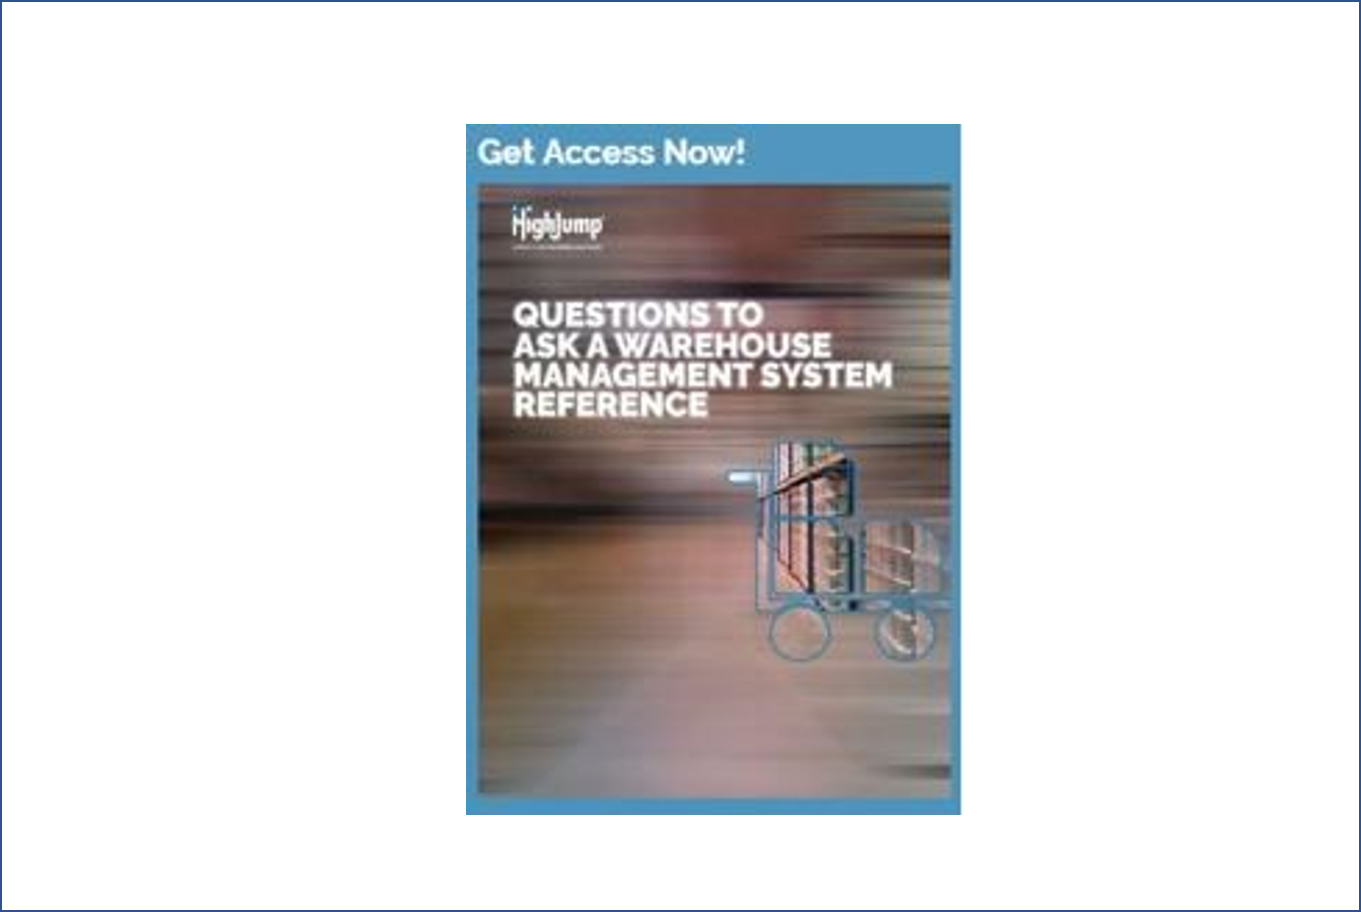 WHAT TO ASK A WAREHOUSE MANAGEMENT SYSTEM (WMS) REFERENCE